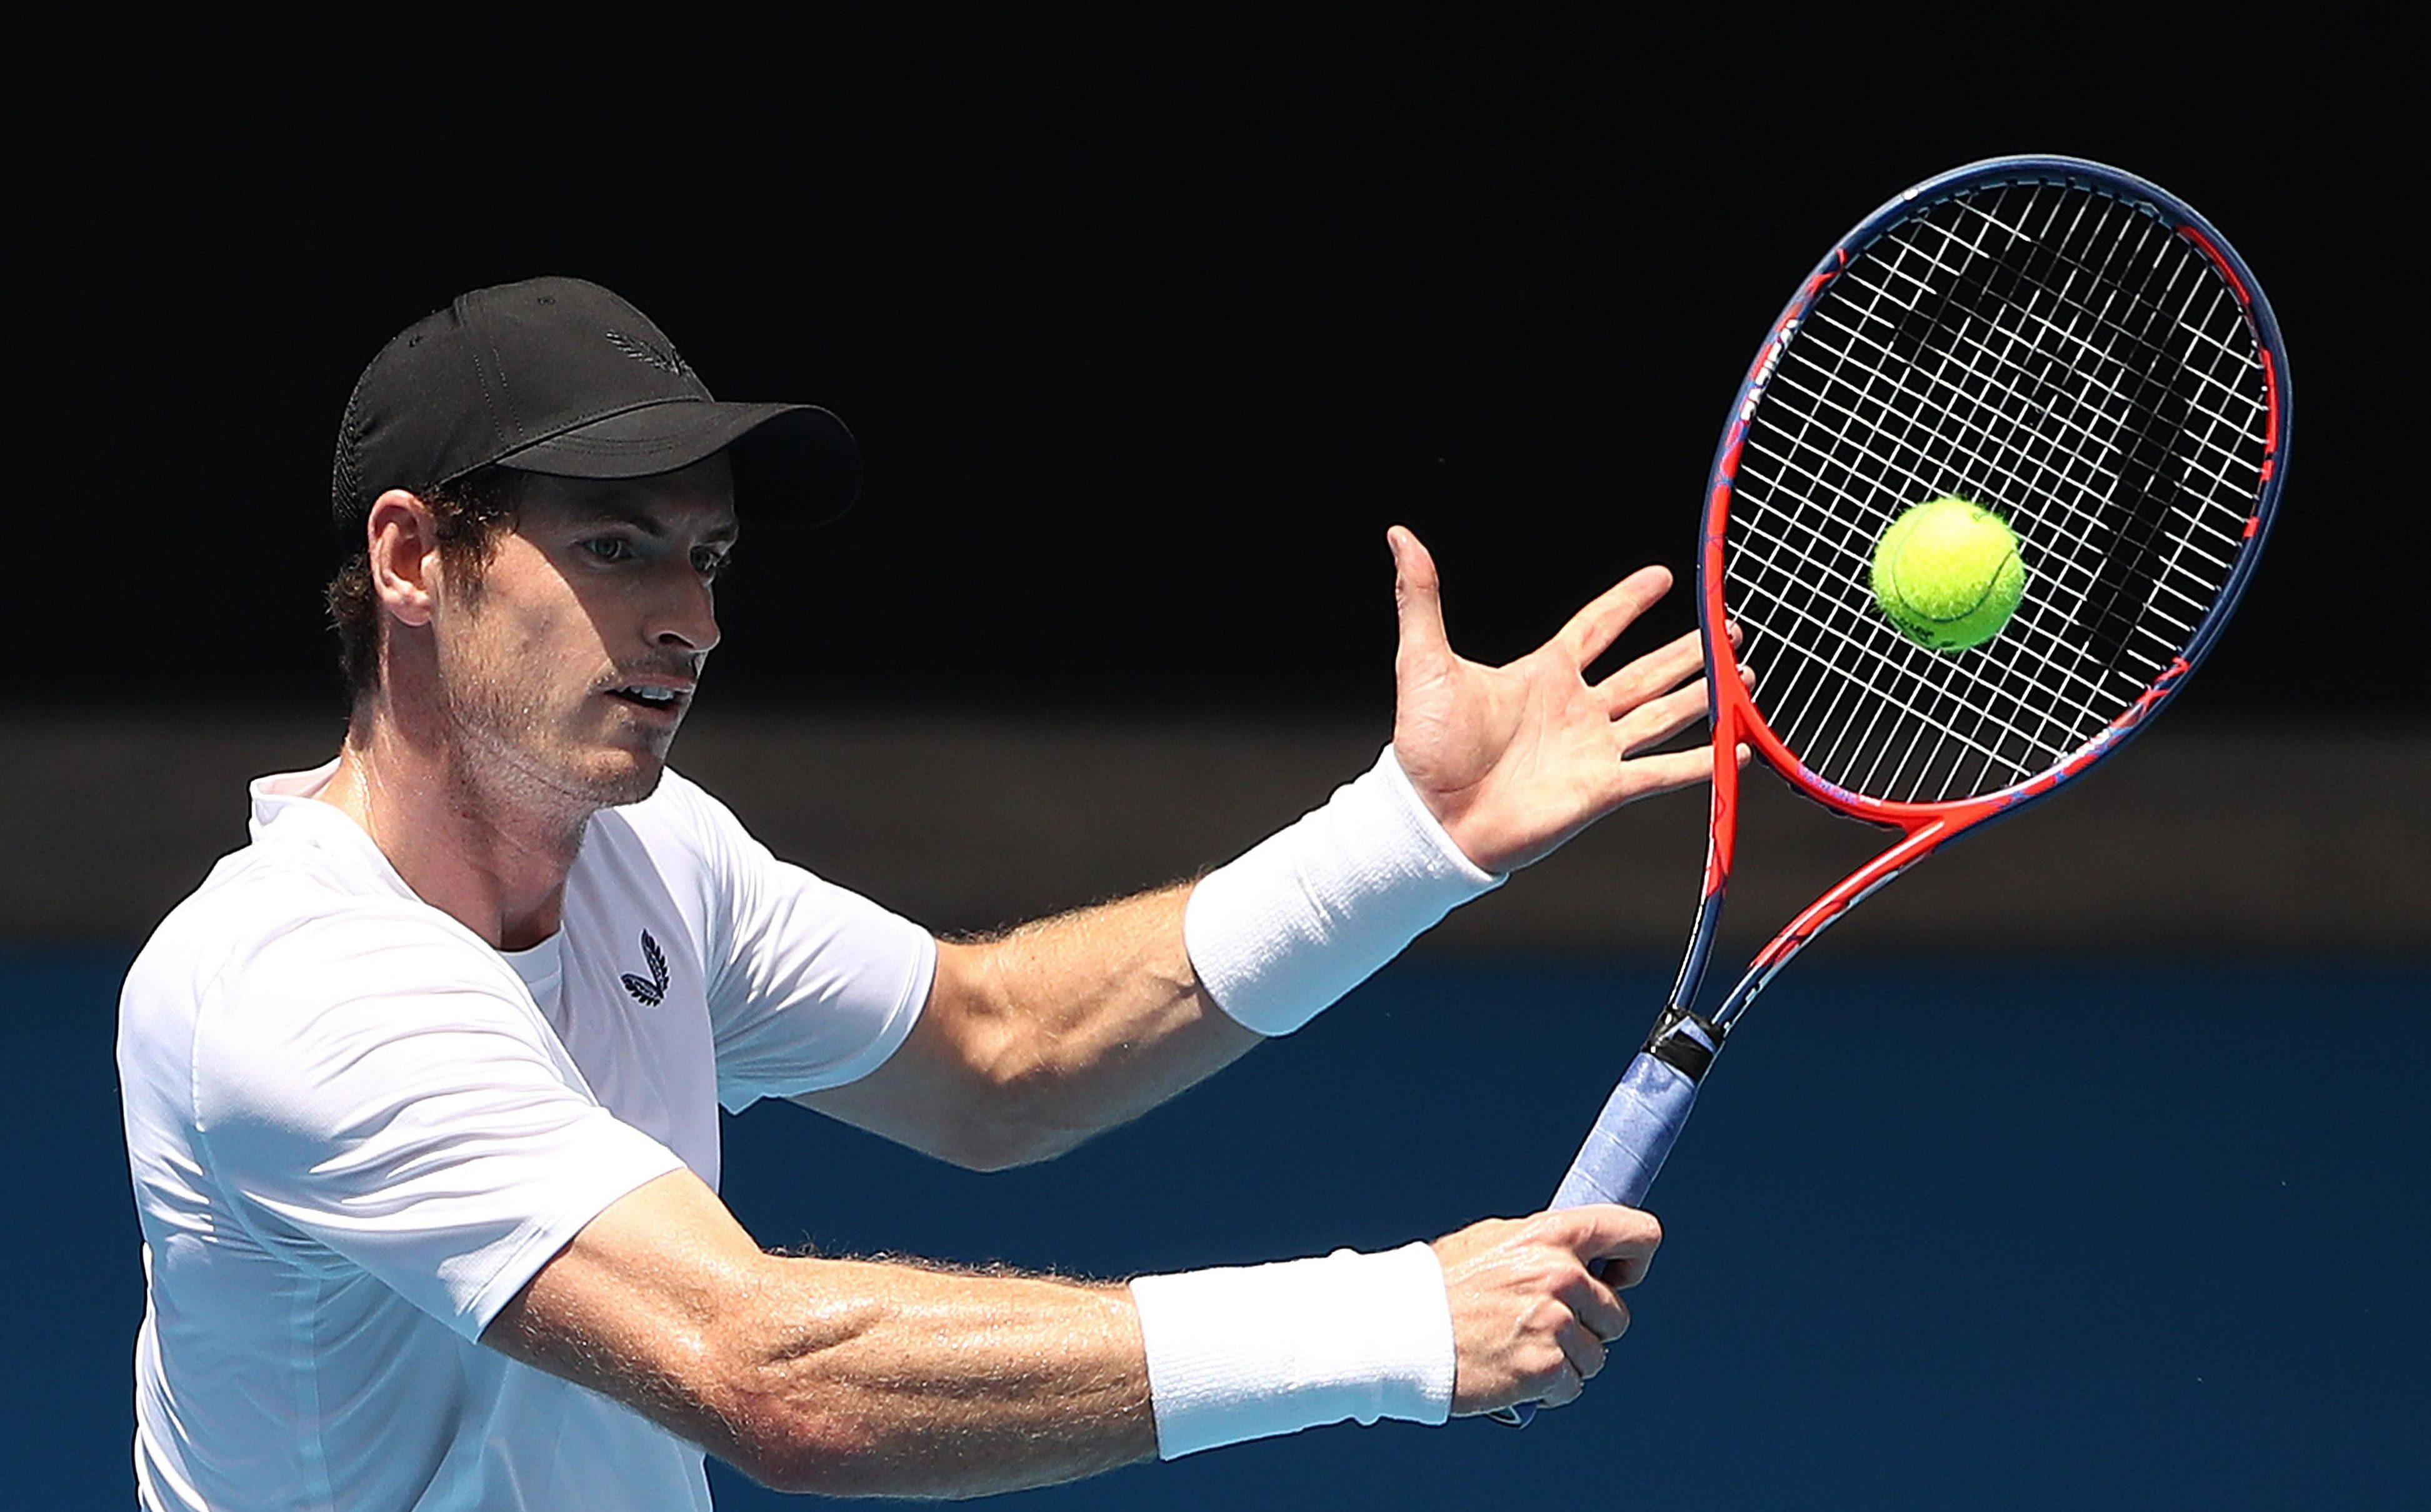 Murray looked stiff in practice ahead of the game